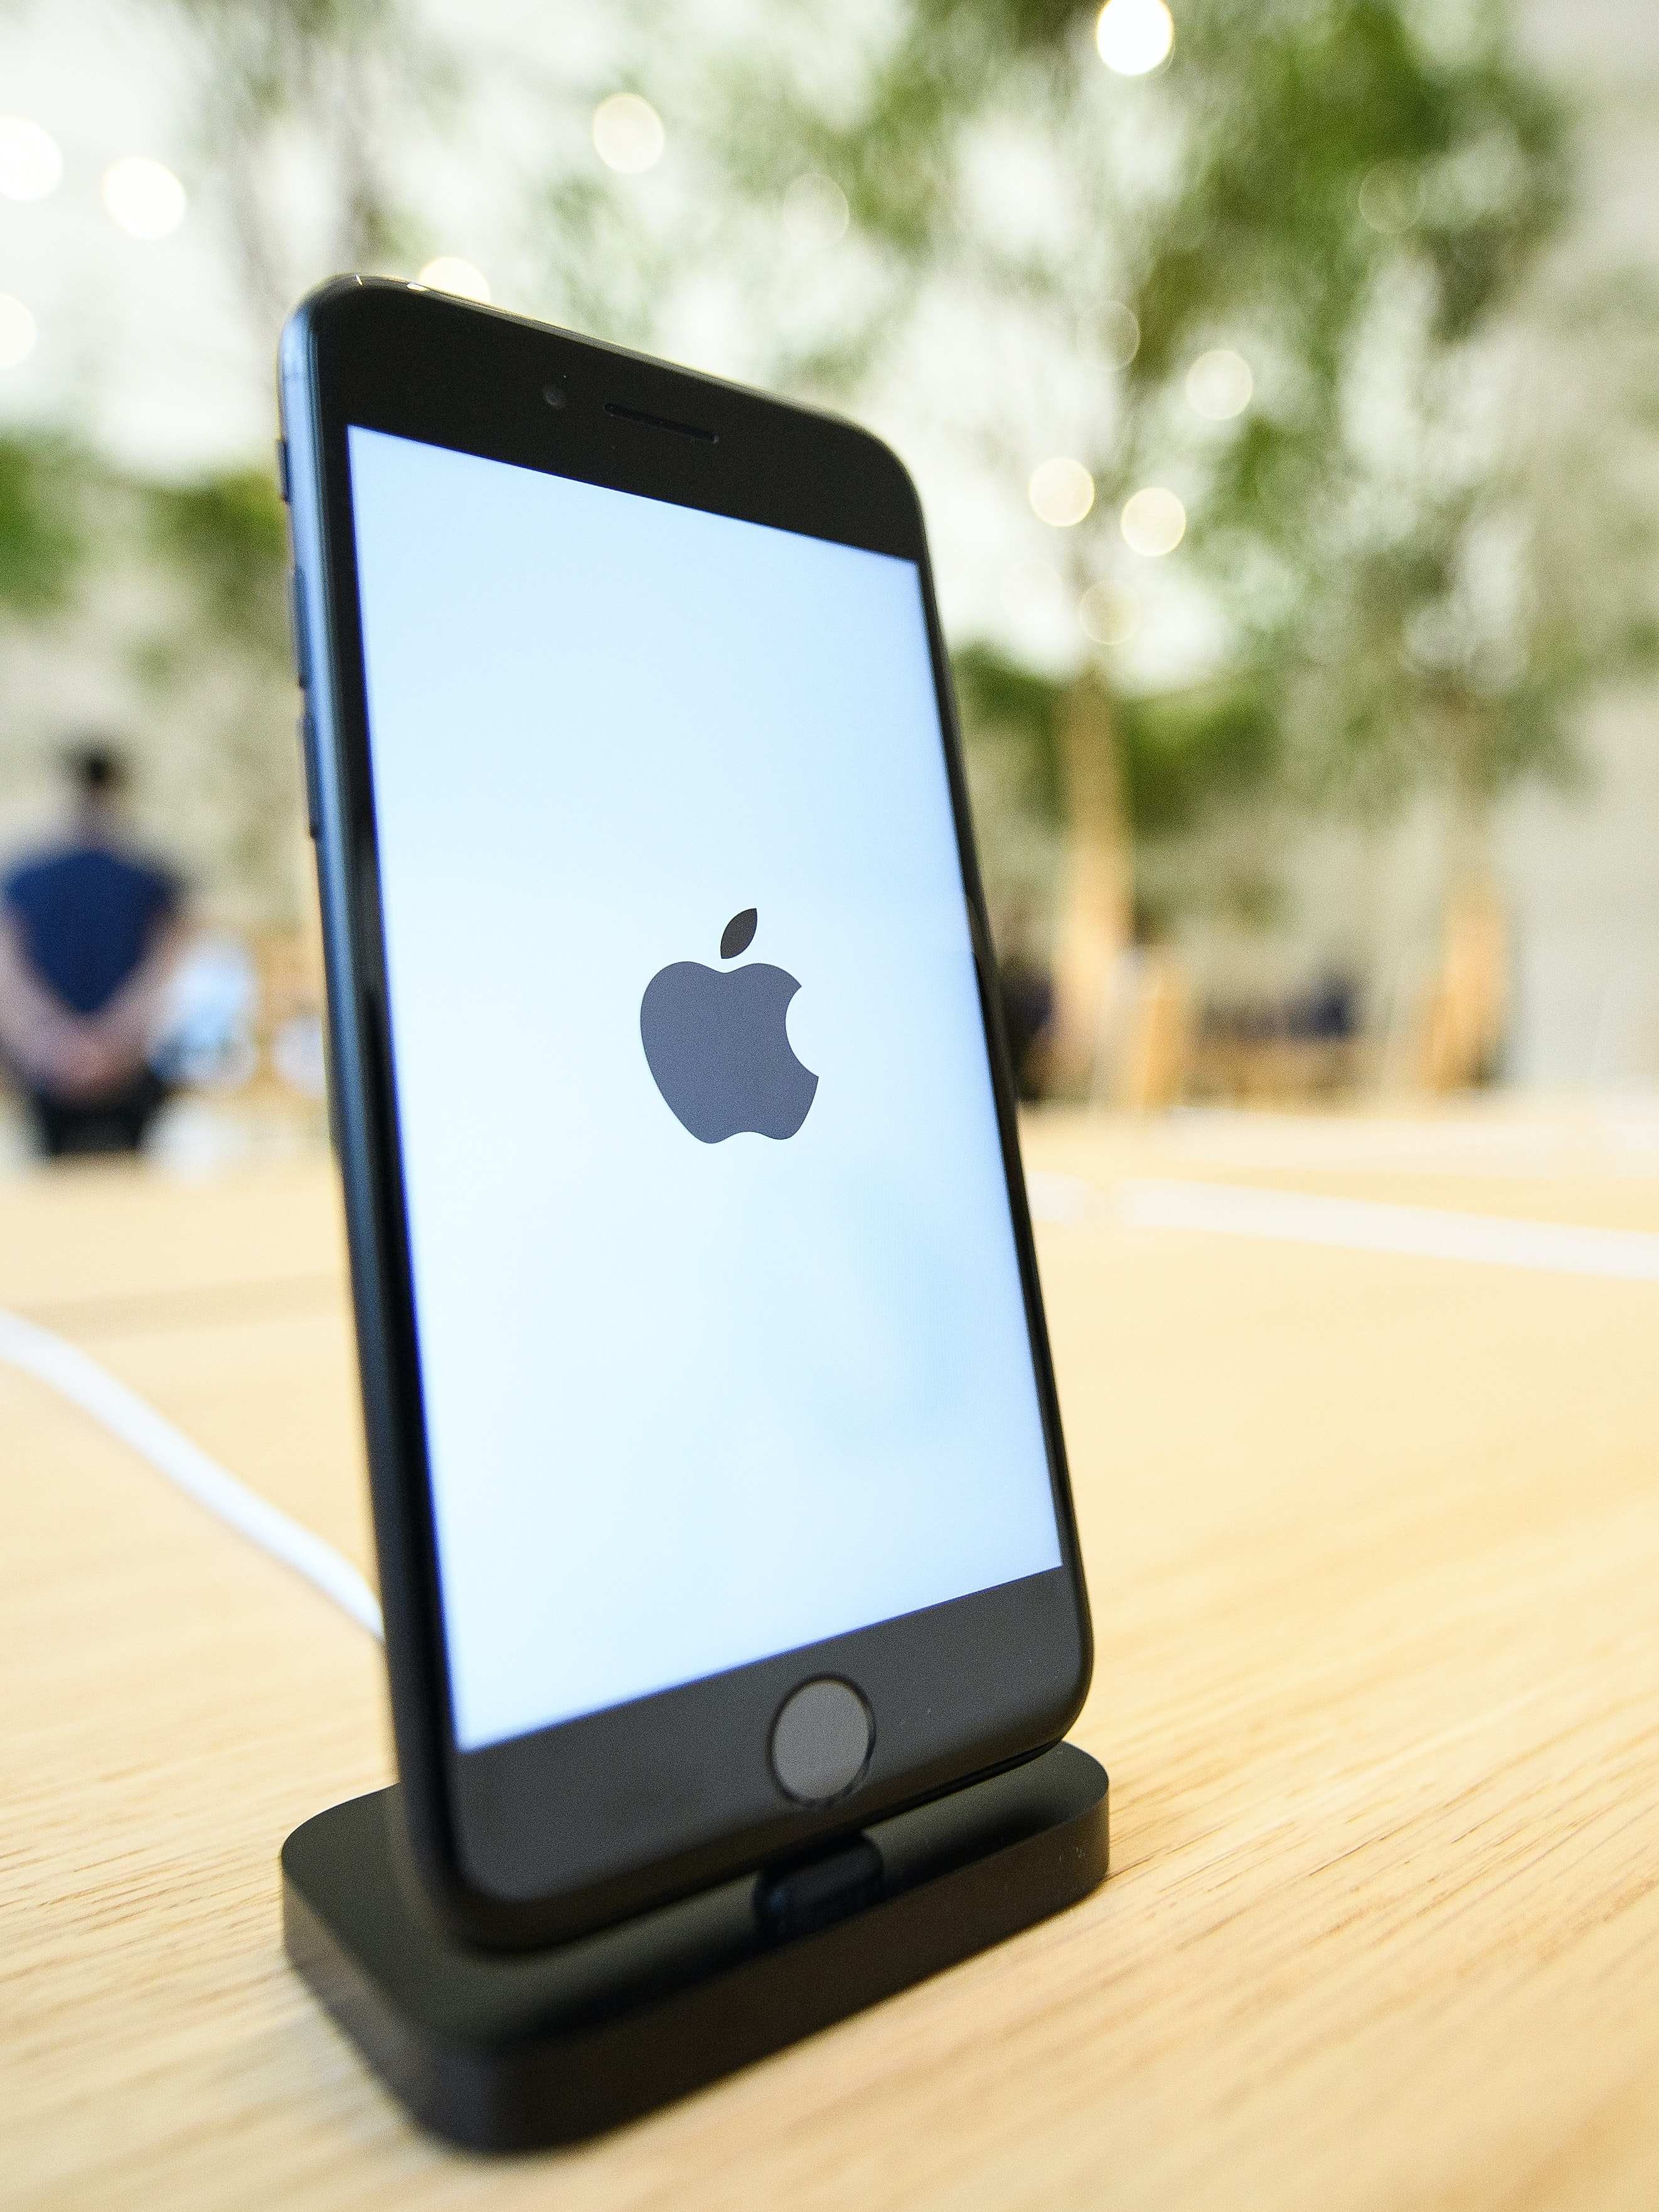 LONDON, ENGLAND - OCTOBER 13:  An Apple iPhone 7s is seen in the upgraded Apple store on Regent Street on October 13, 2016 in London, England. Regent Street was Apple's first store in Europe, and has handled more than 60 million customers over the past 12 years, and will be the first store in Europe with the new design concept.  (Photo by Leon Neal/Getty Images)